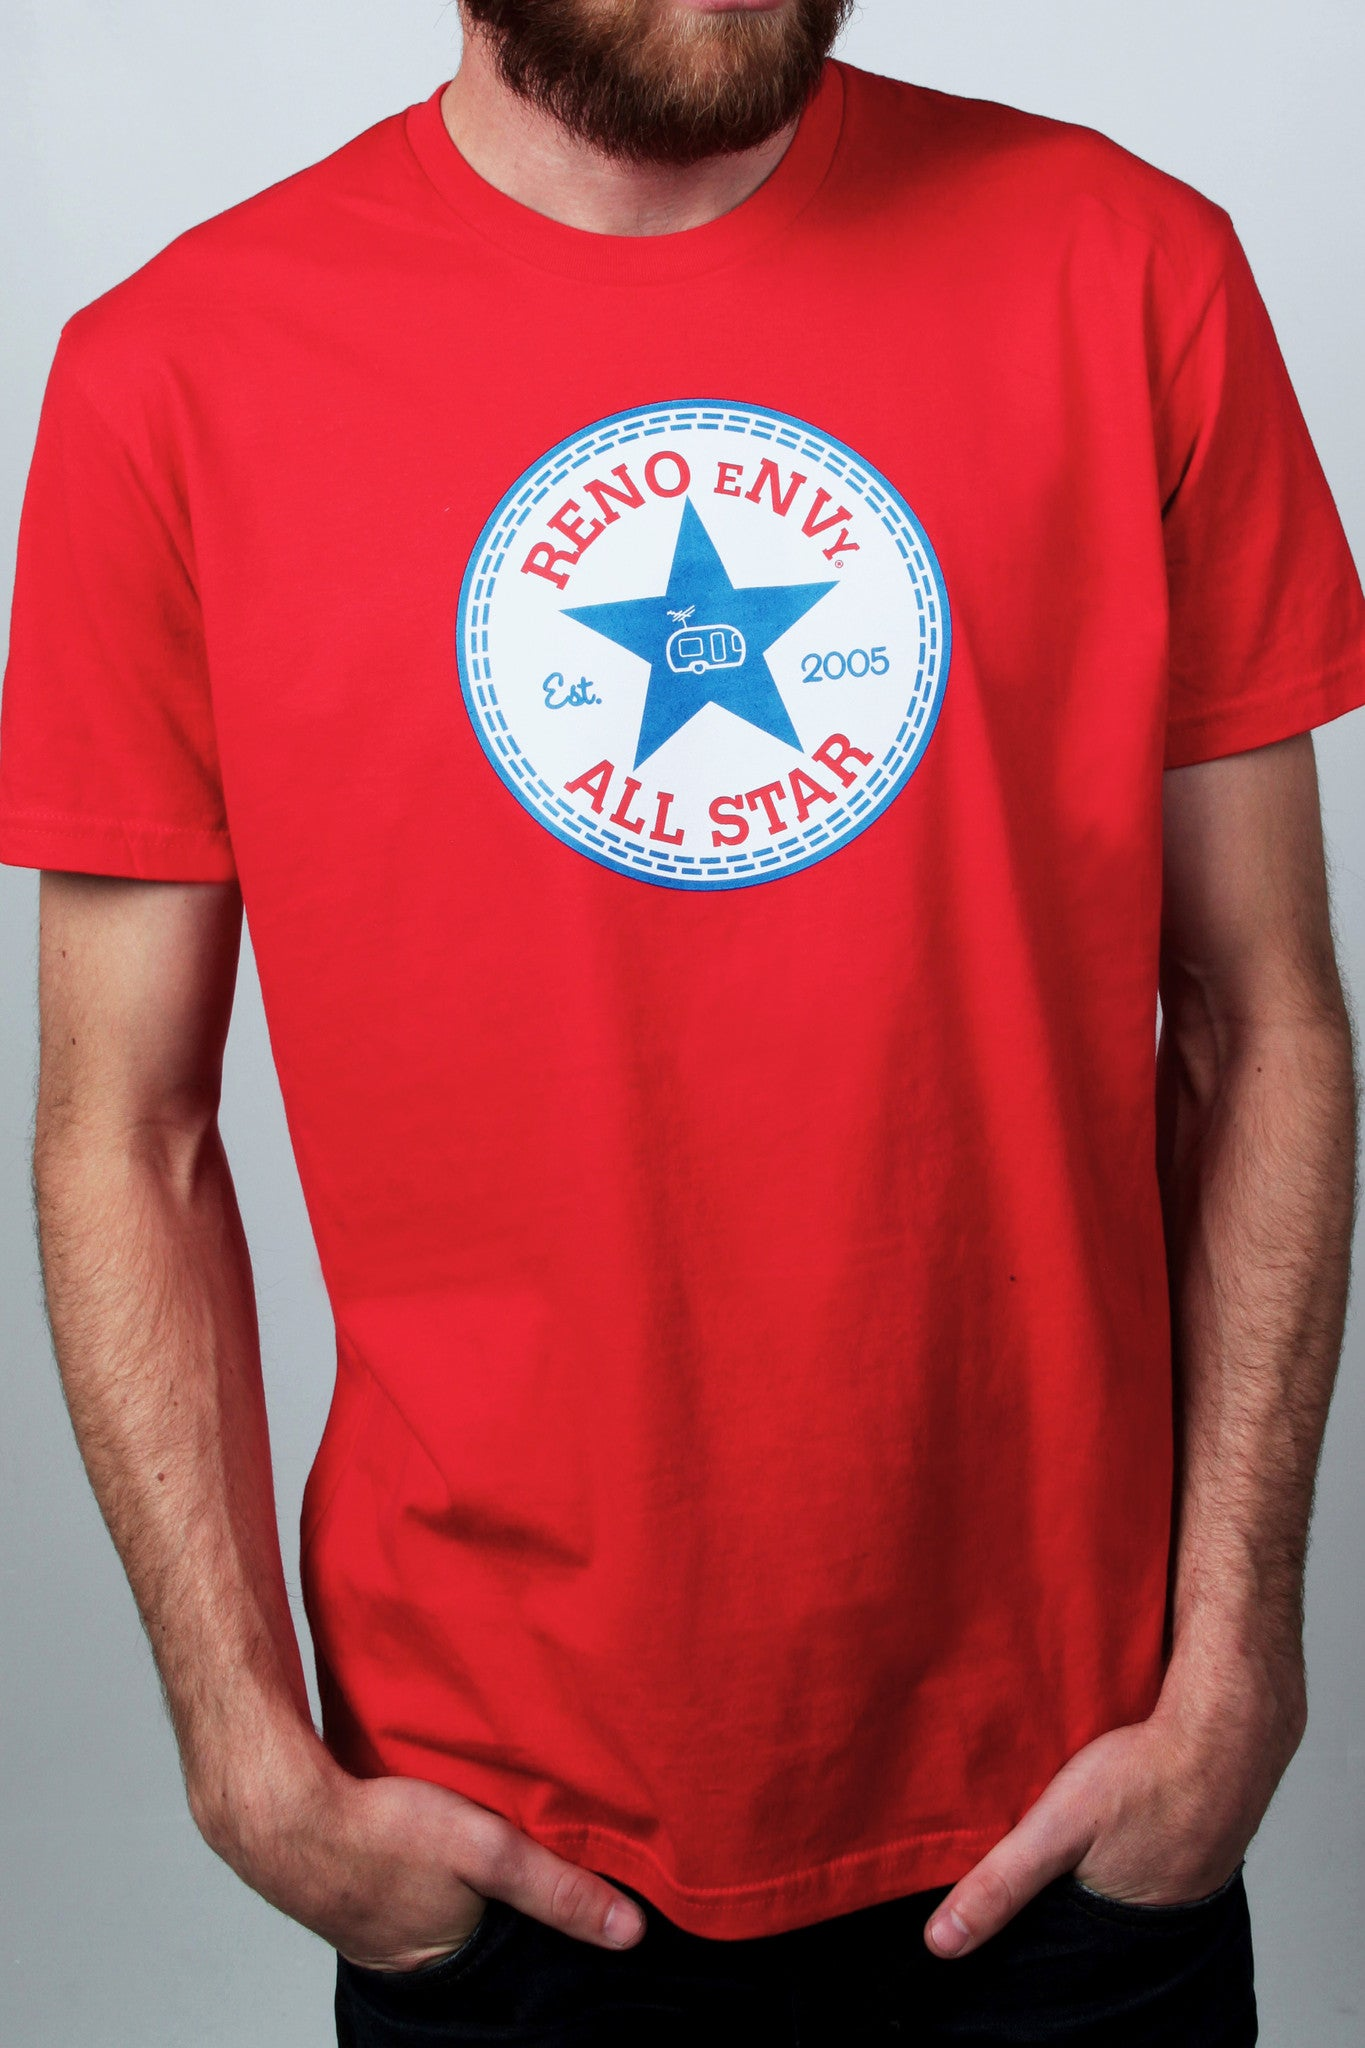 All Star T-Shirt (Red)